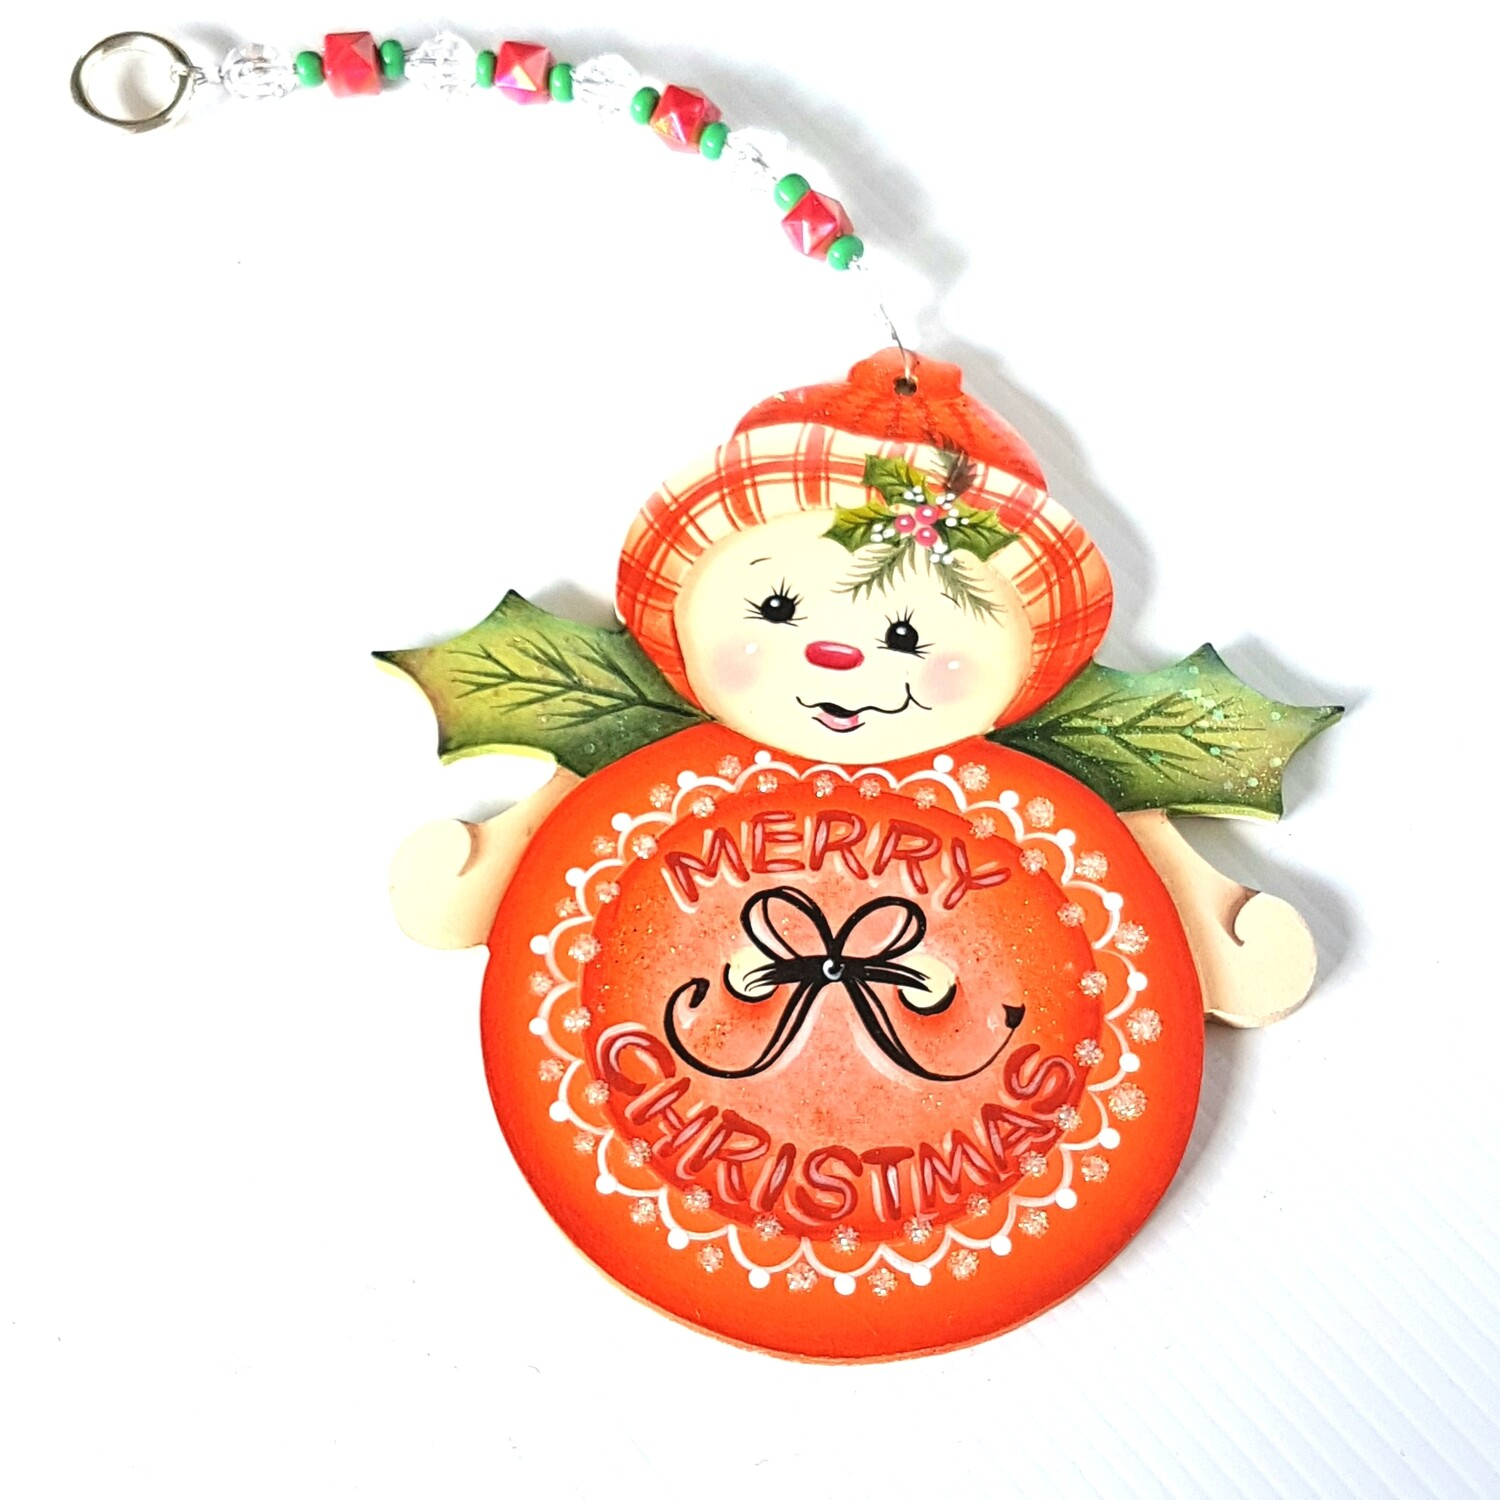 Merry Christmas Snowman Ornament Blue